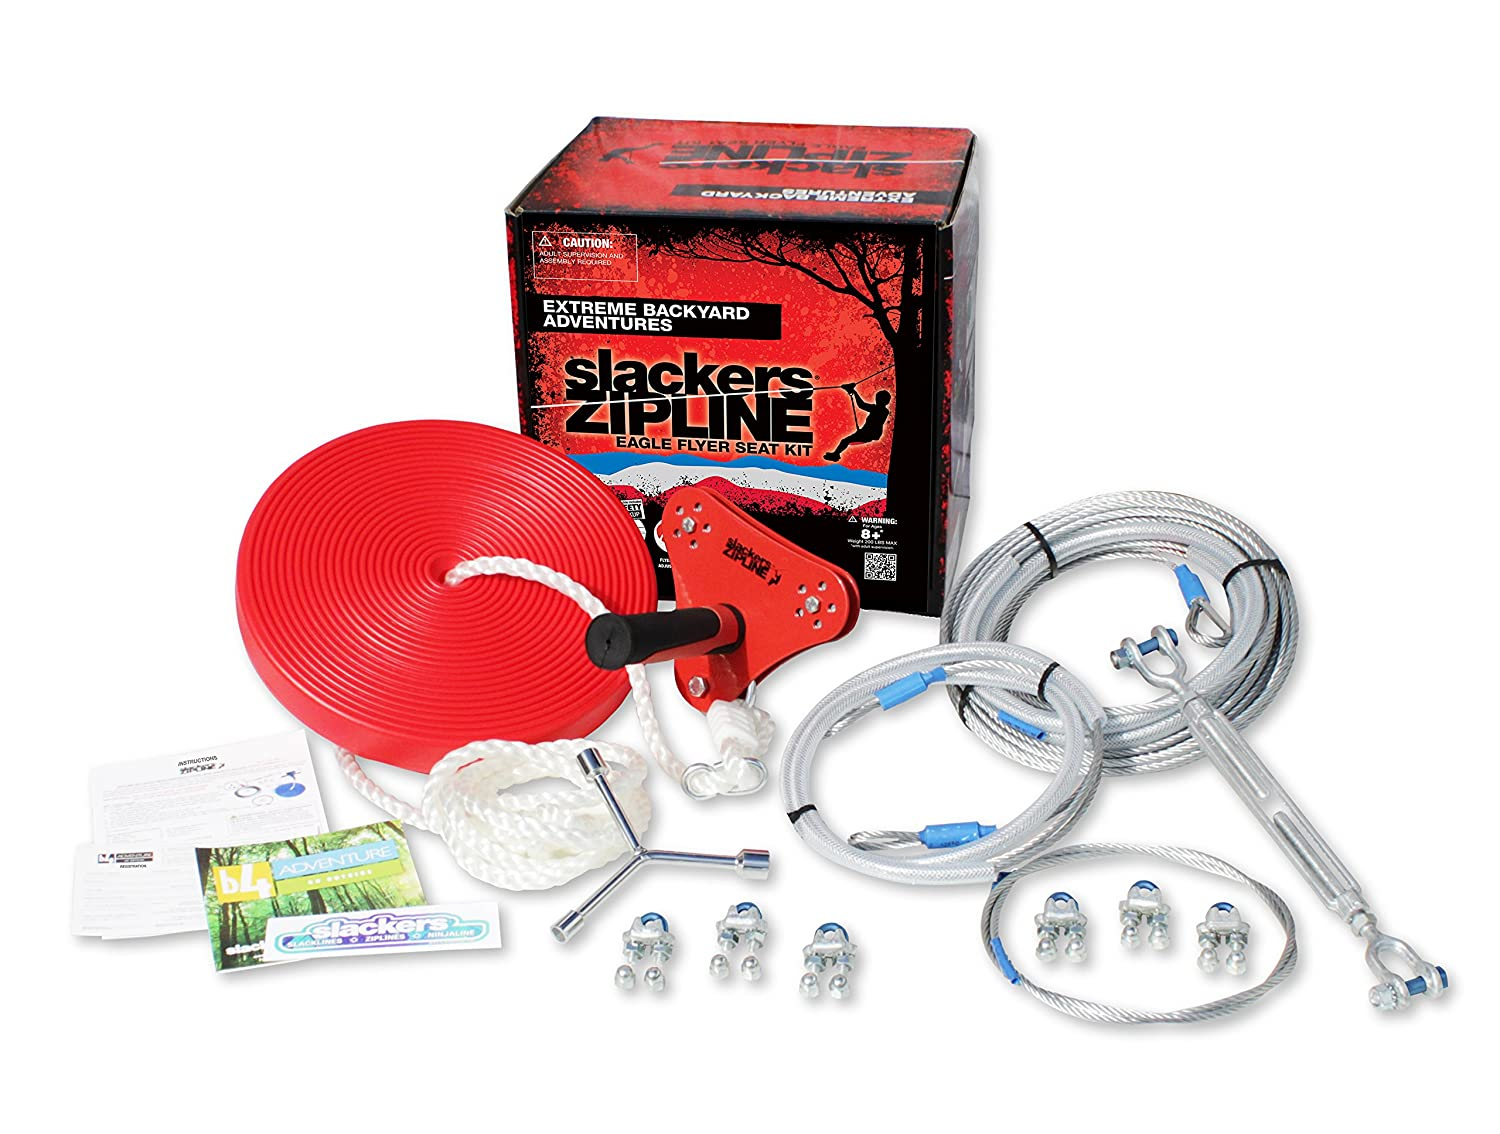 90' Eagle Series Seated Zipline Kit